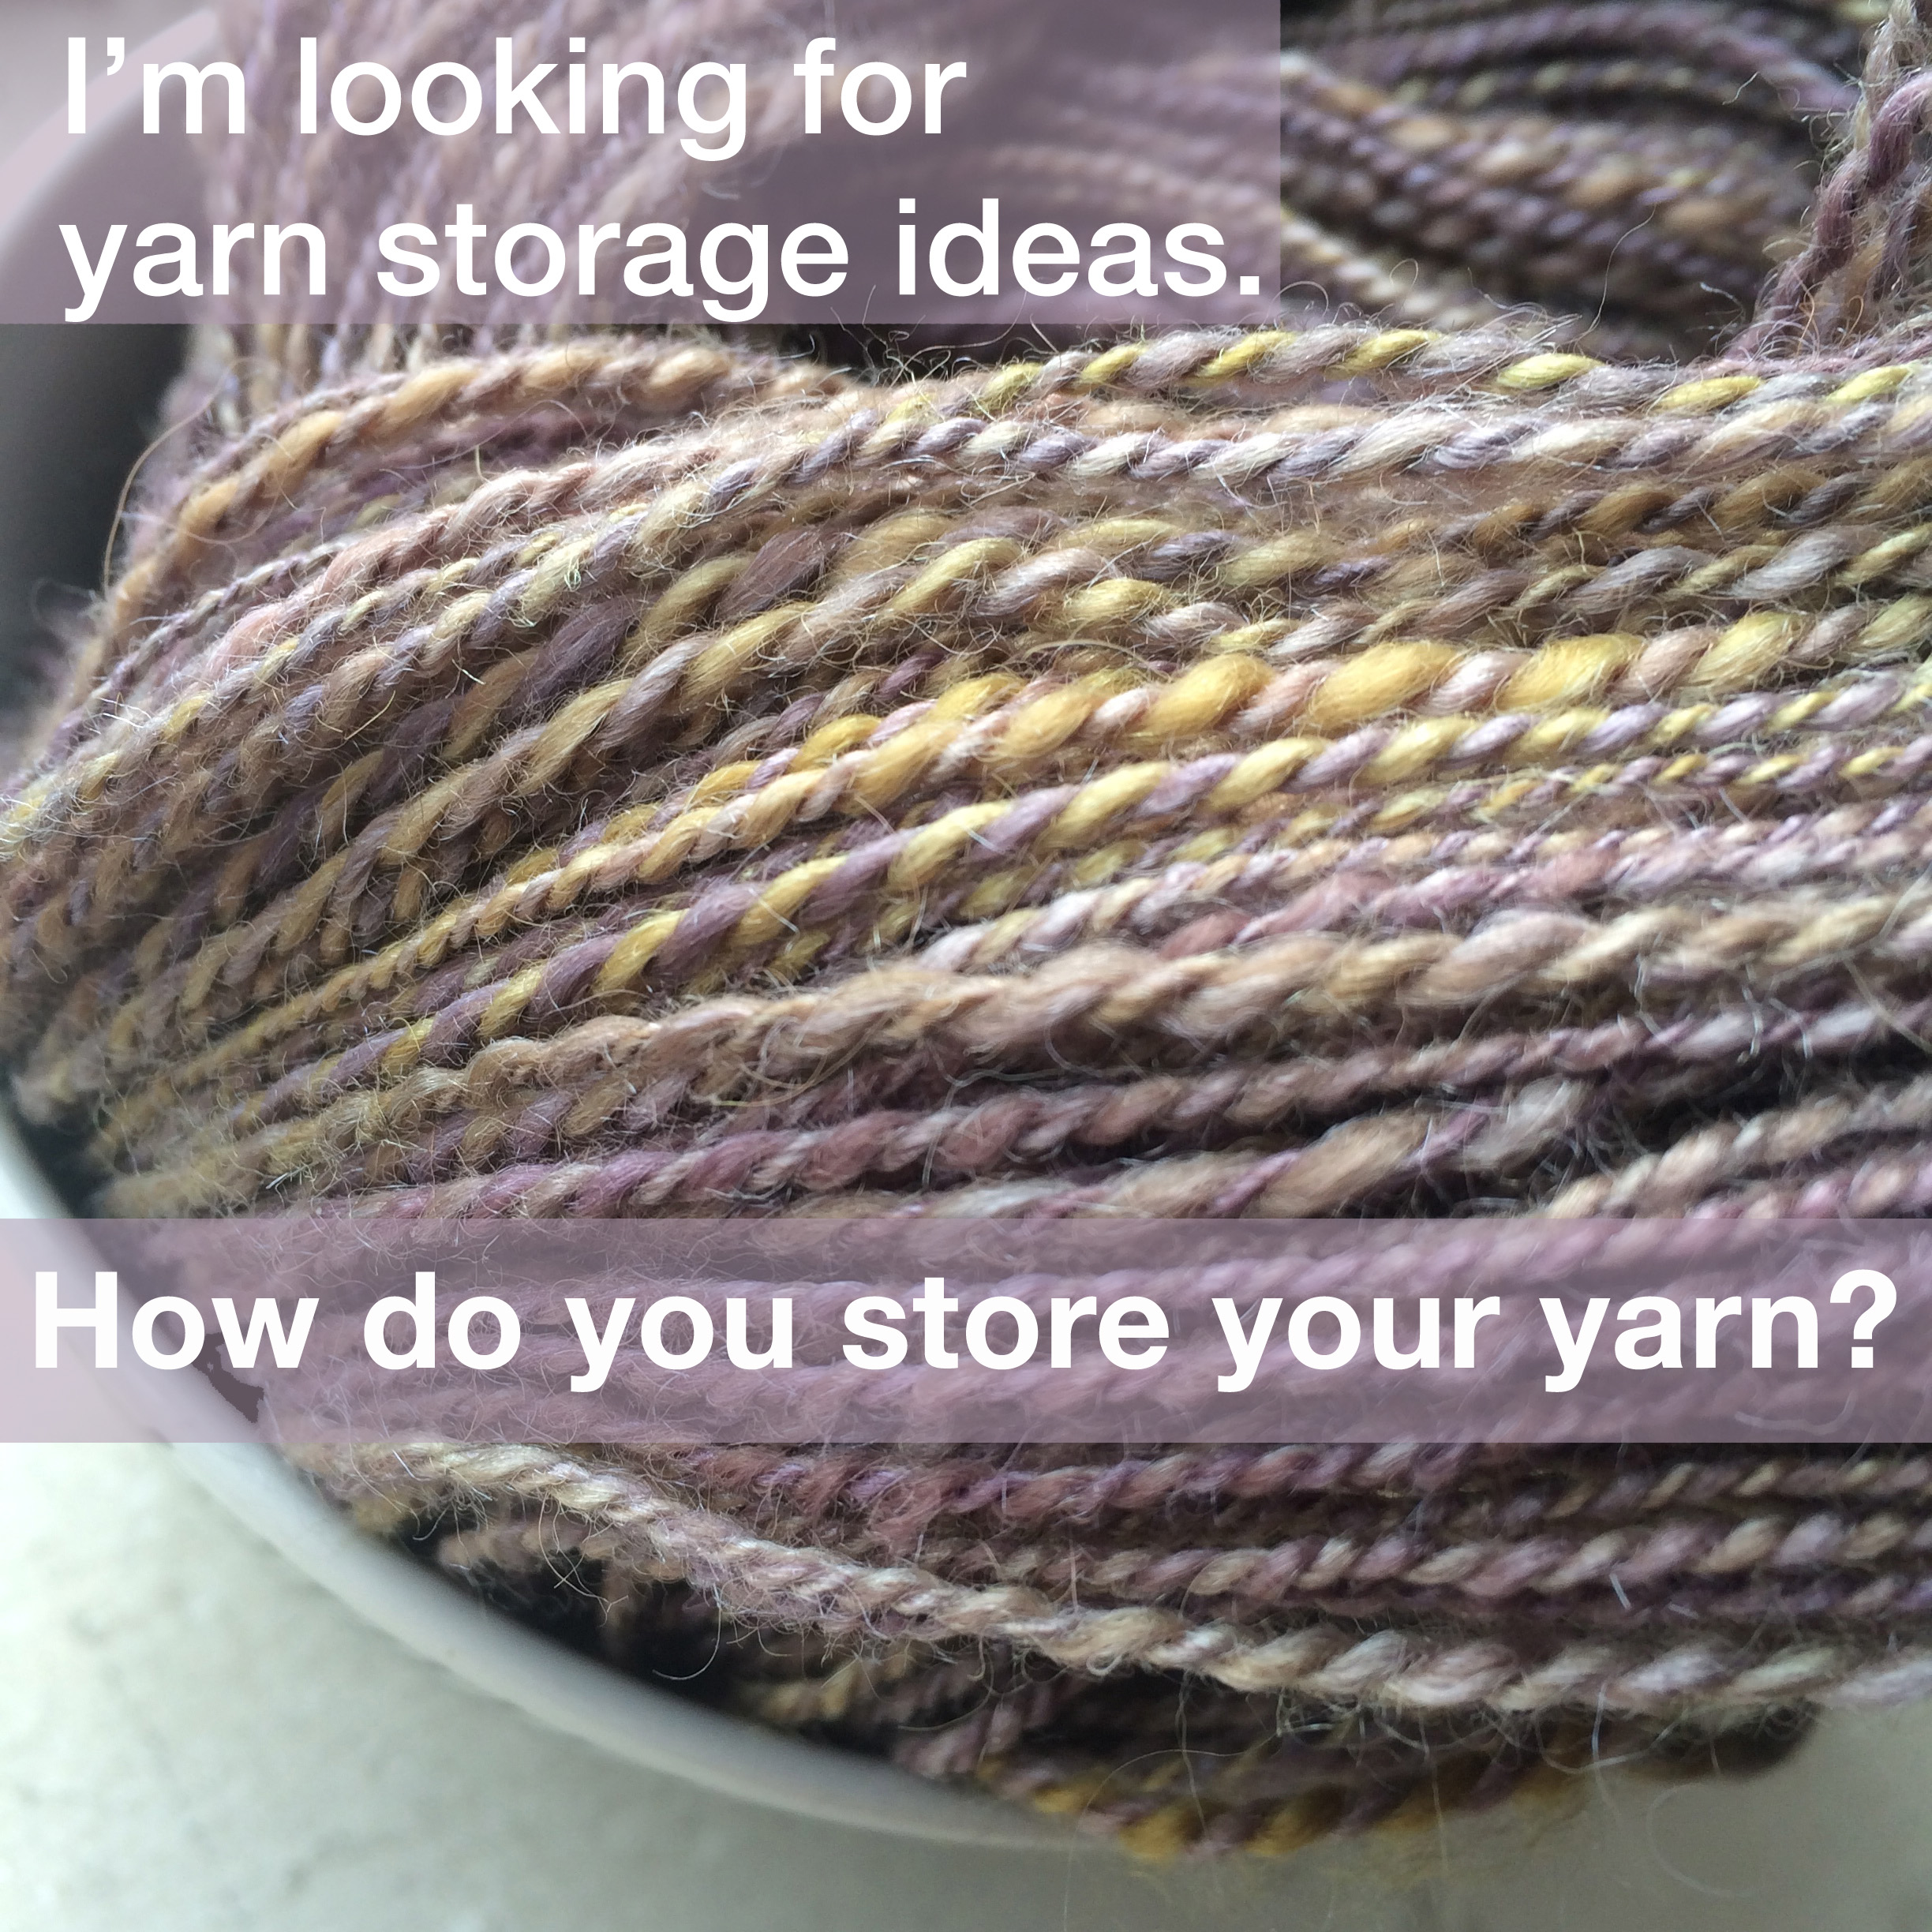 So part of dealing with bedbugs is having to wash/dry all your clothes u0026 linens (and in my case yarn fabric and fiber) on hot before sealing them all ... & Holly Chayes » Iu0027m looking for yarn storage ideas. How do you store ...